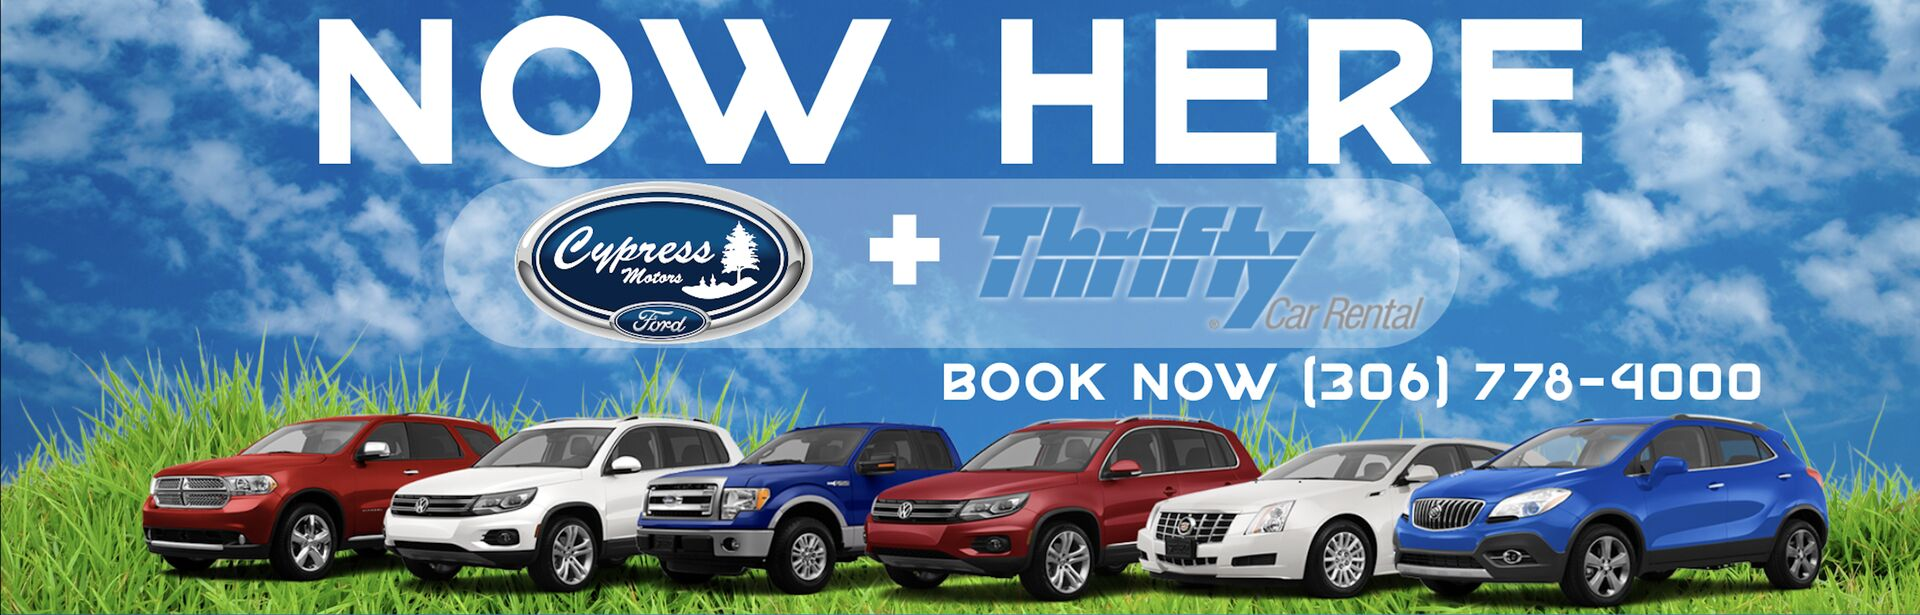 Thrifty Car Rental now here